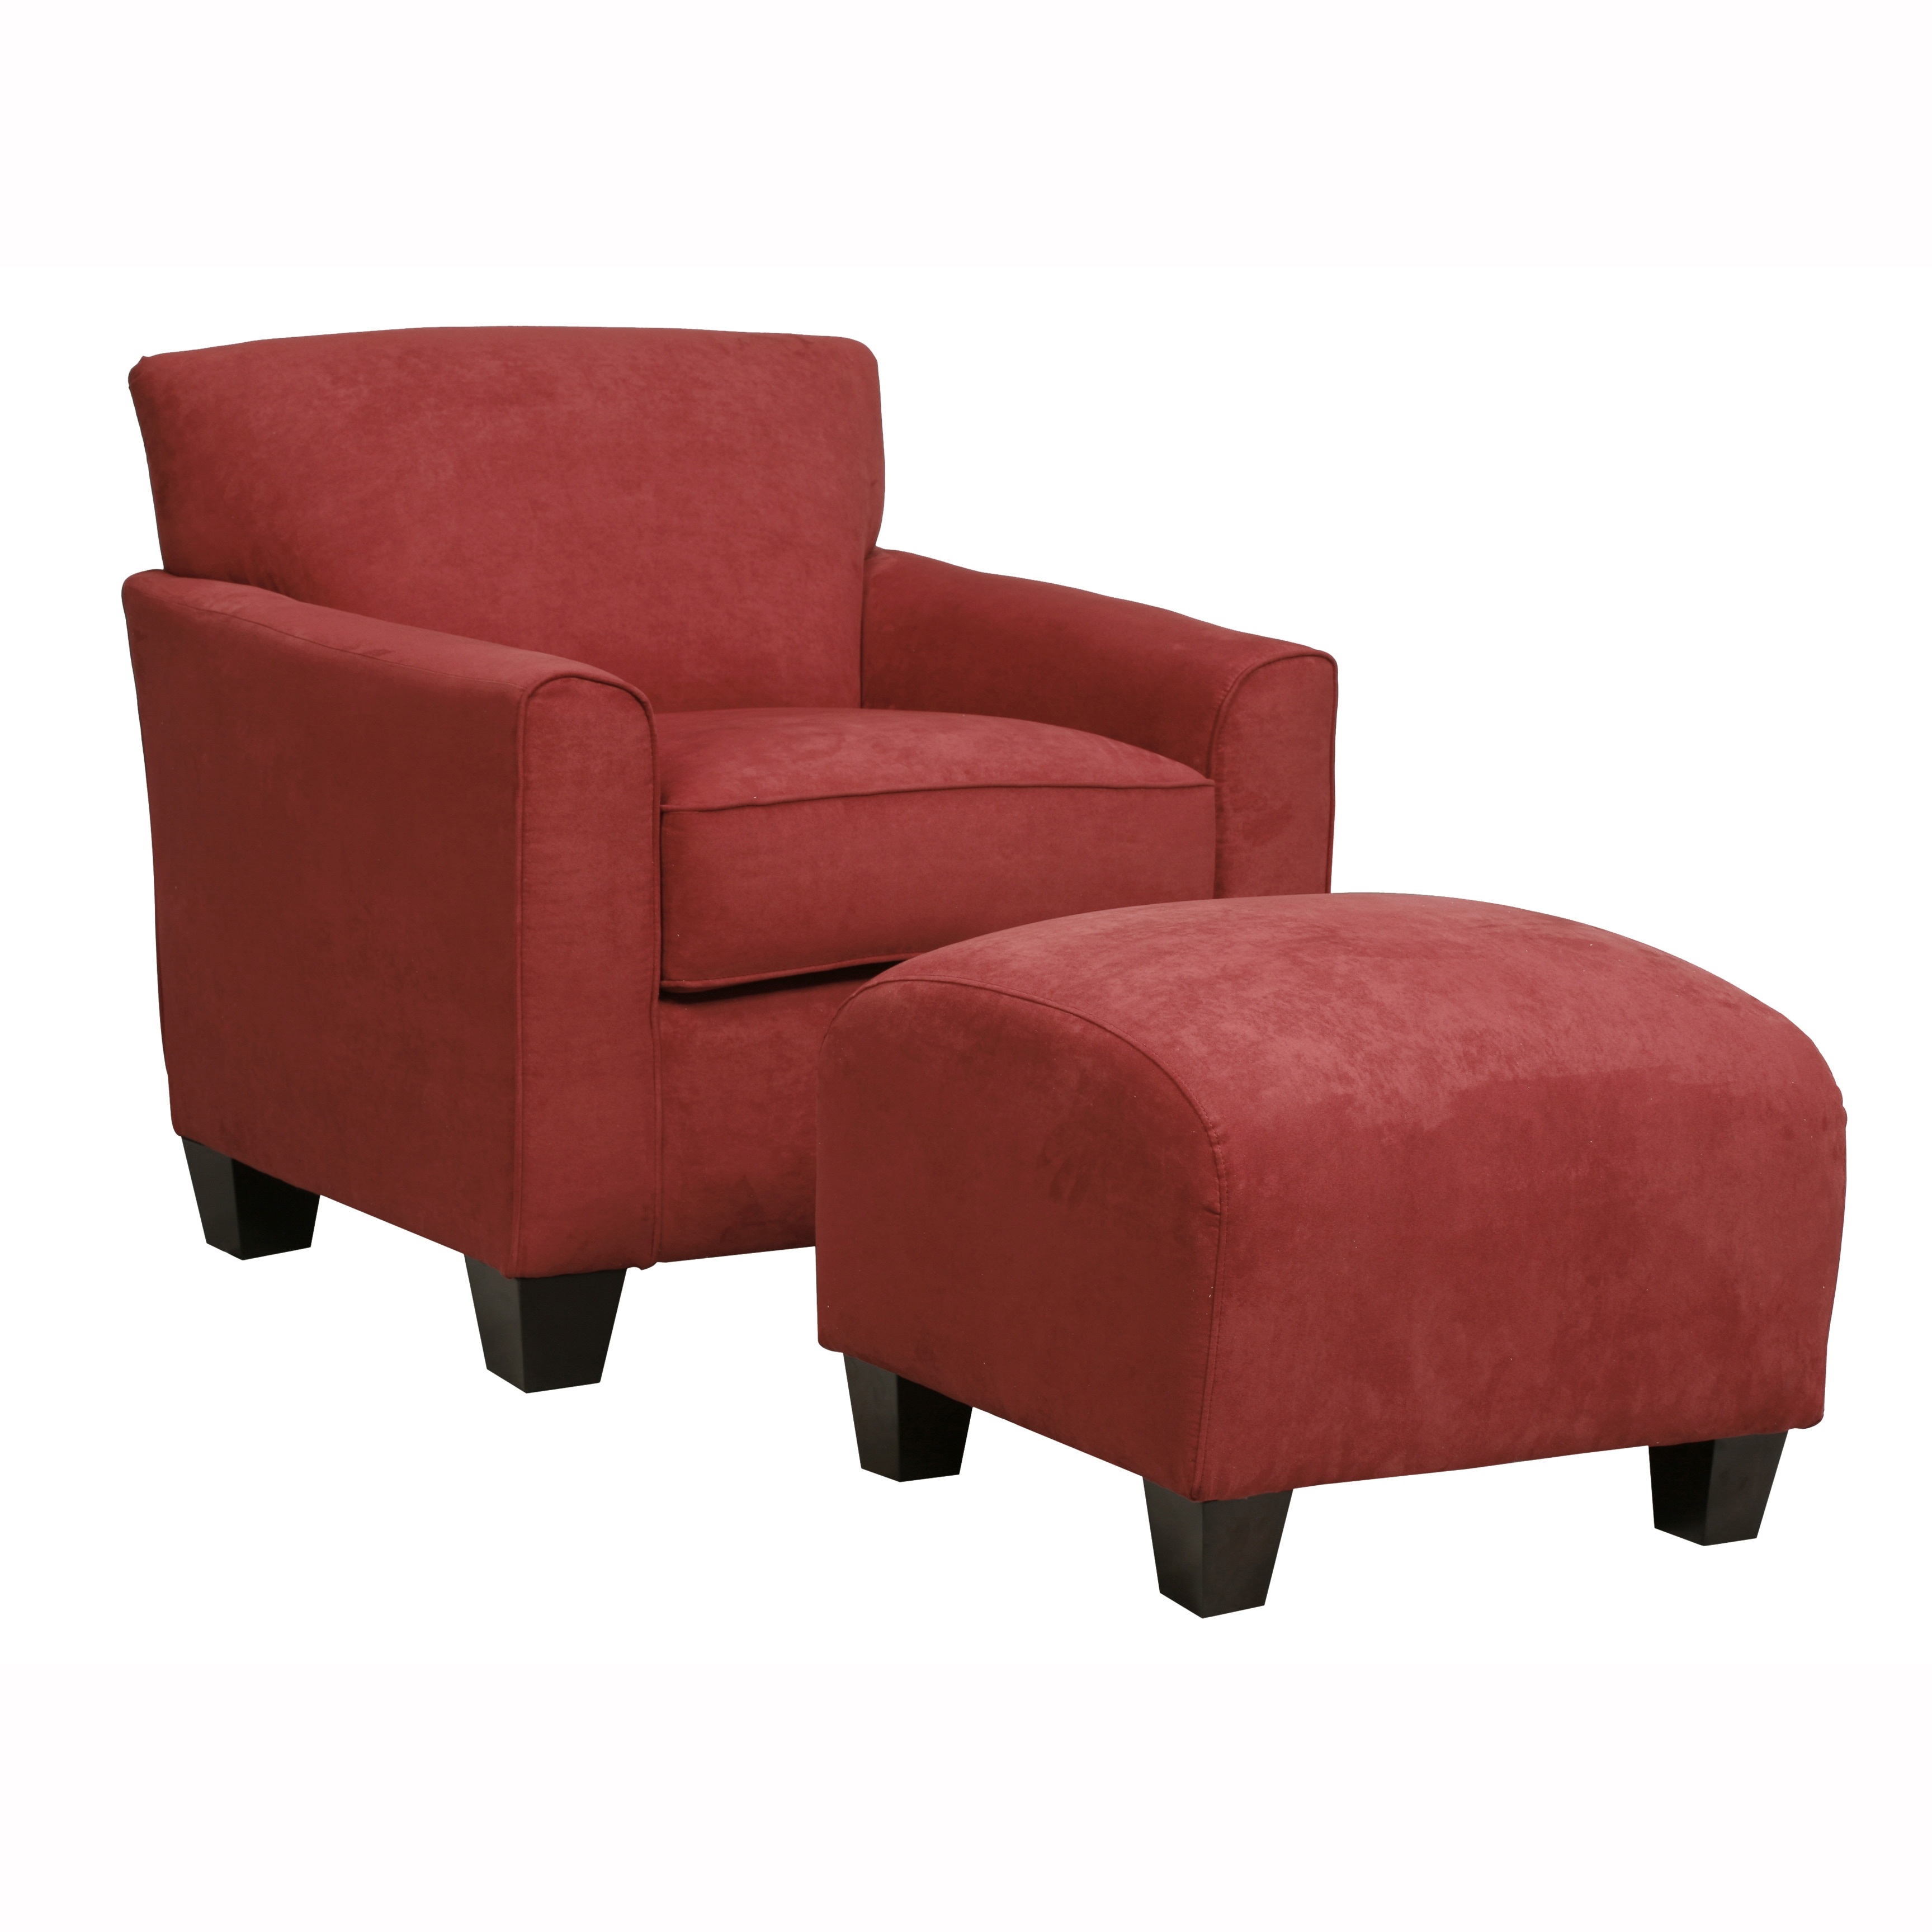 today abbyson home fabric and free garden ottoman overstock shipping chairs ottomans shiloh chair gliding product